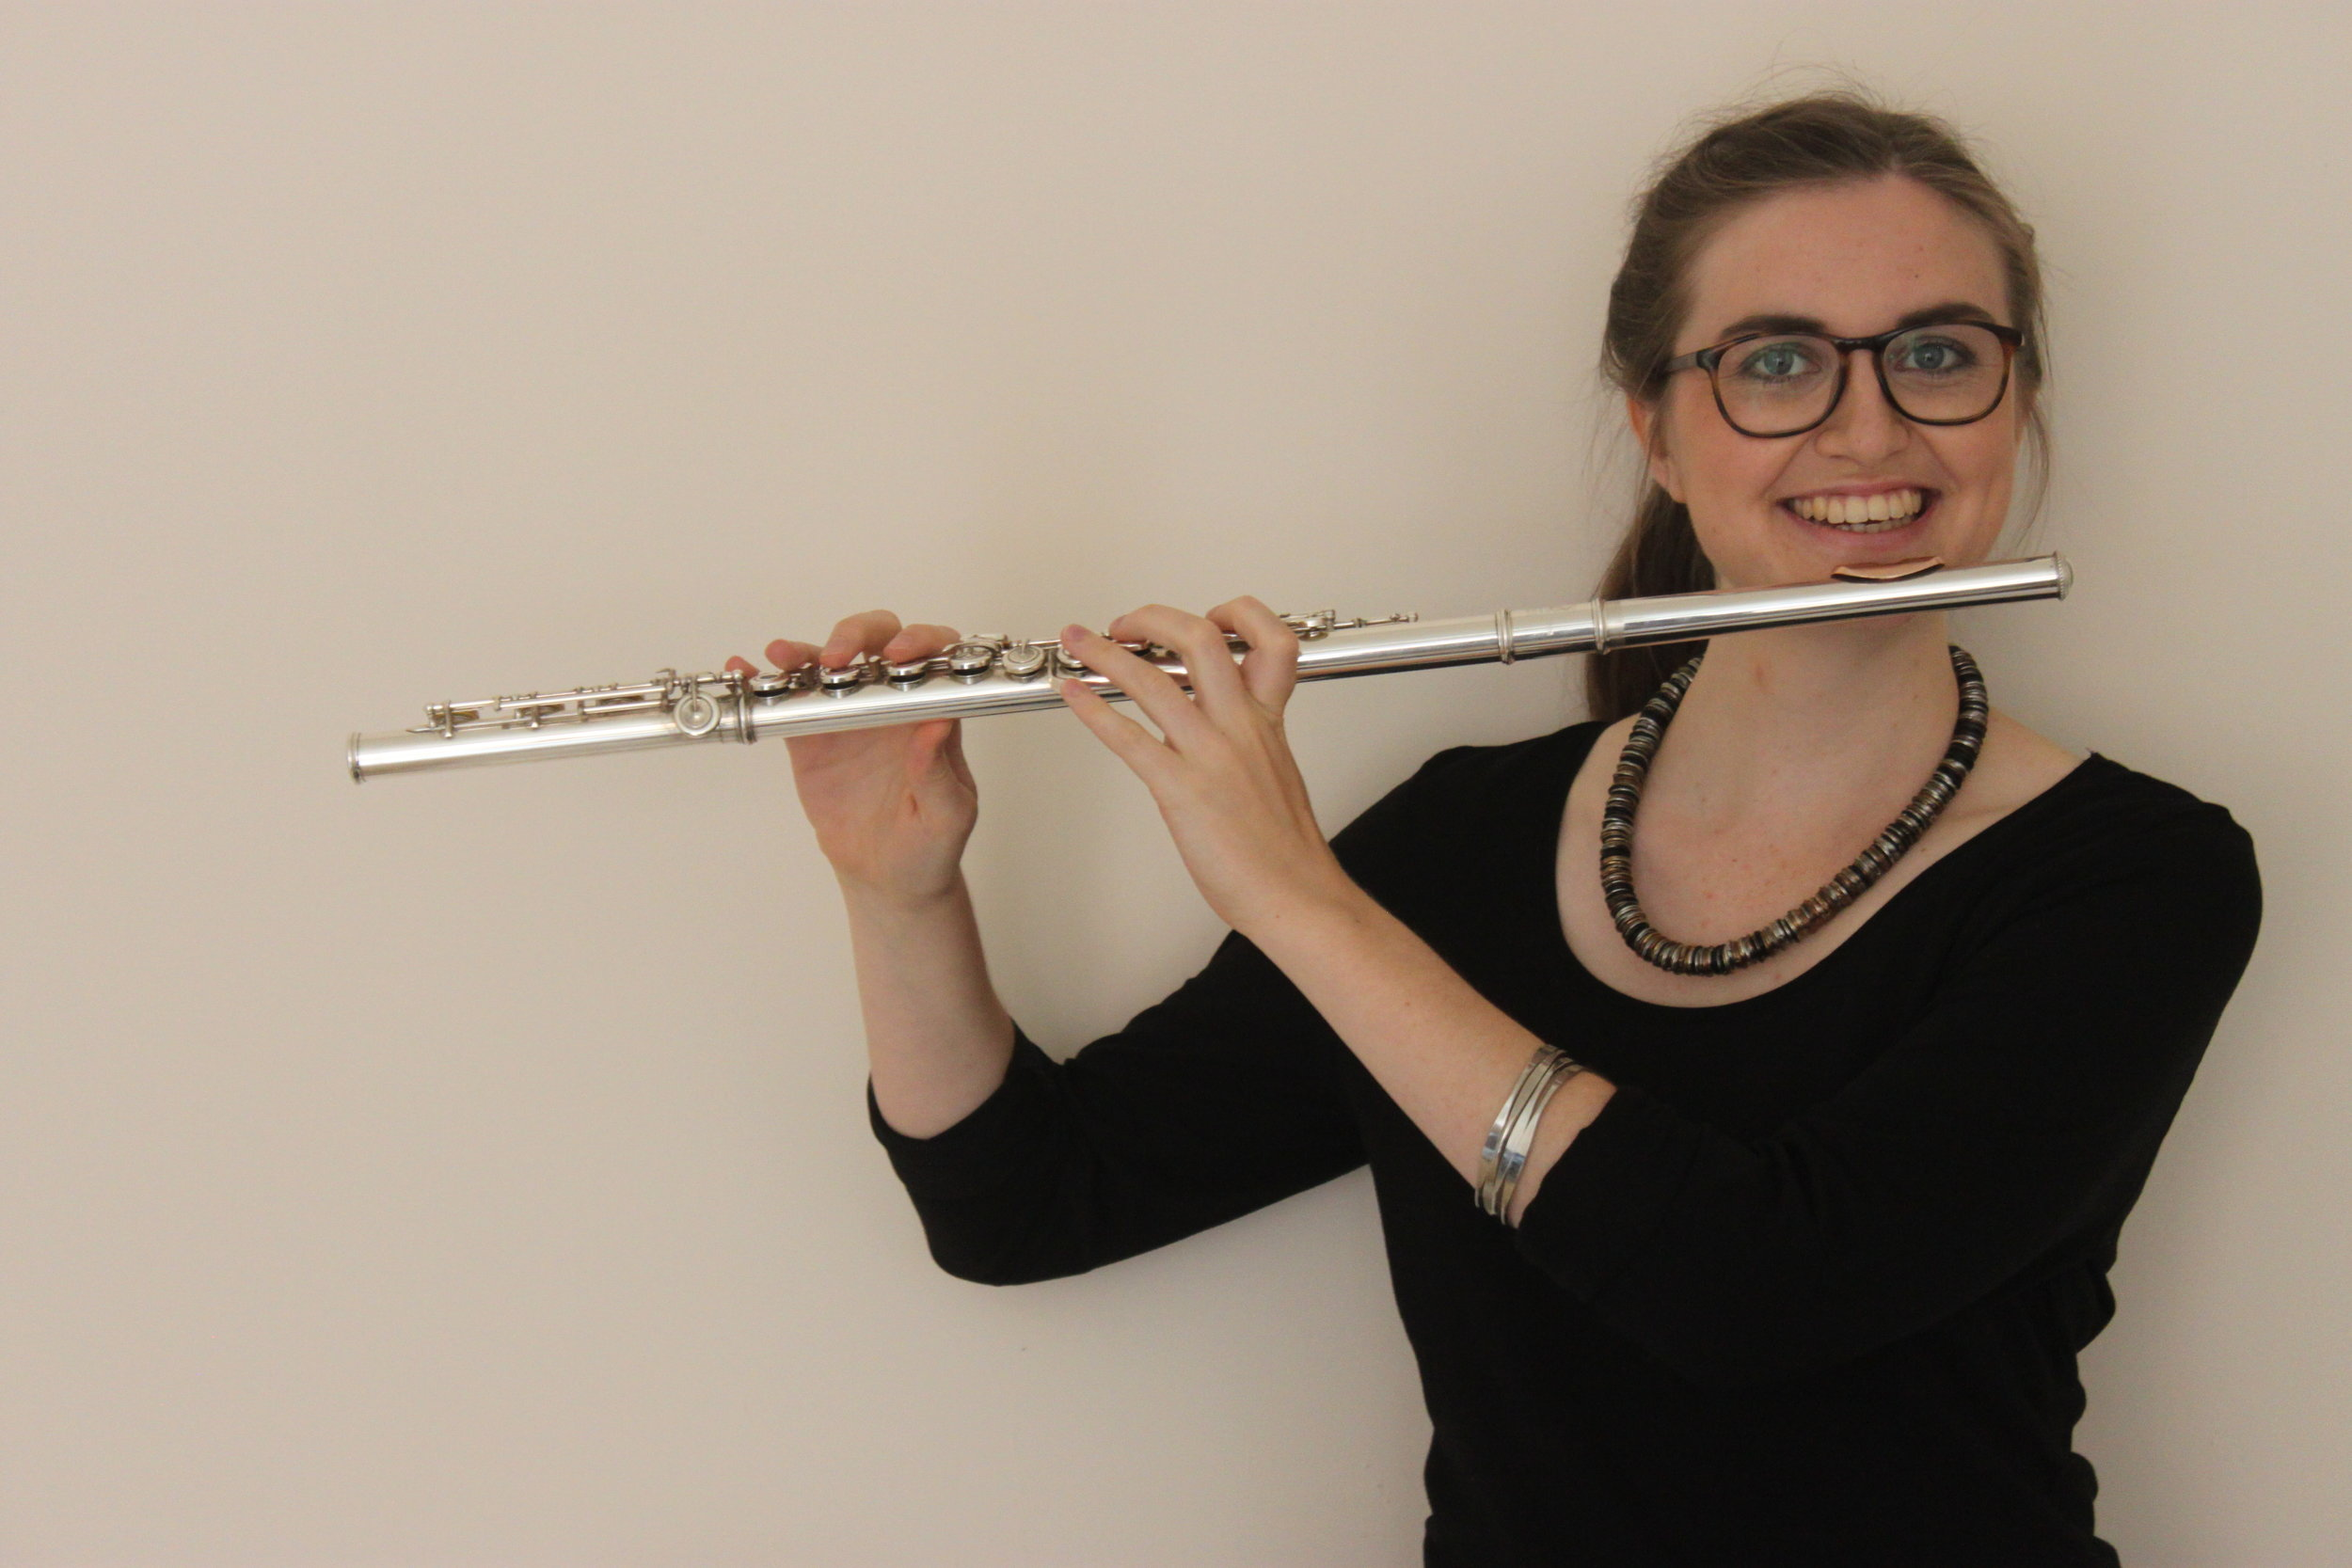 Hanna Vigren - Swedish flautist Hanna Vigren moved to Glasgow in 2016 after completing her Bachelor degree at the Academy of Music and Drama in her hometown, Gothenburg. In July 2018, she graduated from the Royal Conservatoire of Scotland with a Master's Degree in Music Performance. She studied with Katherine Bryan, Alison Mitchell and Janet Richardson during her masters, and is currently taking the continuing education course at RCS with lessons from Helen Brew and Ruth Morley. Hanna is a keen chamber musician and formed a duo with the soprano Héloïse Bernard in 2018. She also plays in aflute/cello/piano trio. Hanna is a volunteer at Drake Music Scotland and has been an assistant in SCO's Creative Learning projects: SCO VIBE and SCO Soundmoves during the summer 2019.We are glad that Hanna is joining daïmon for their Fringe performance of Eclipse.